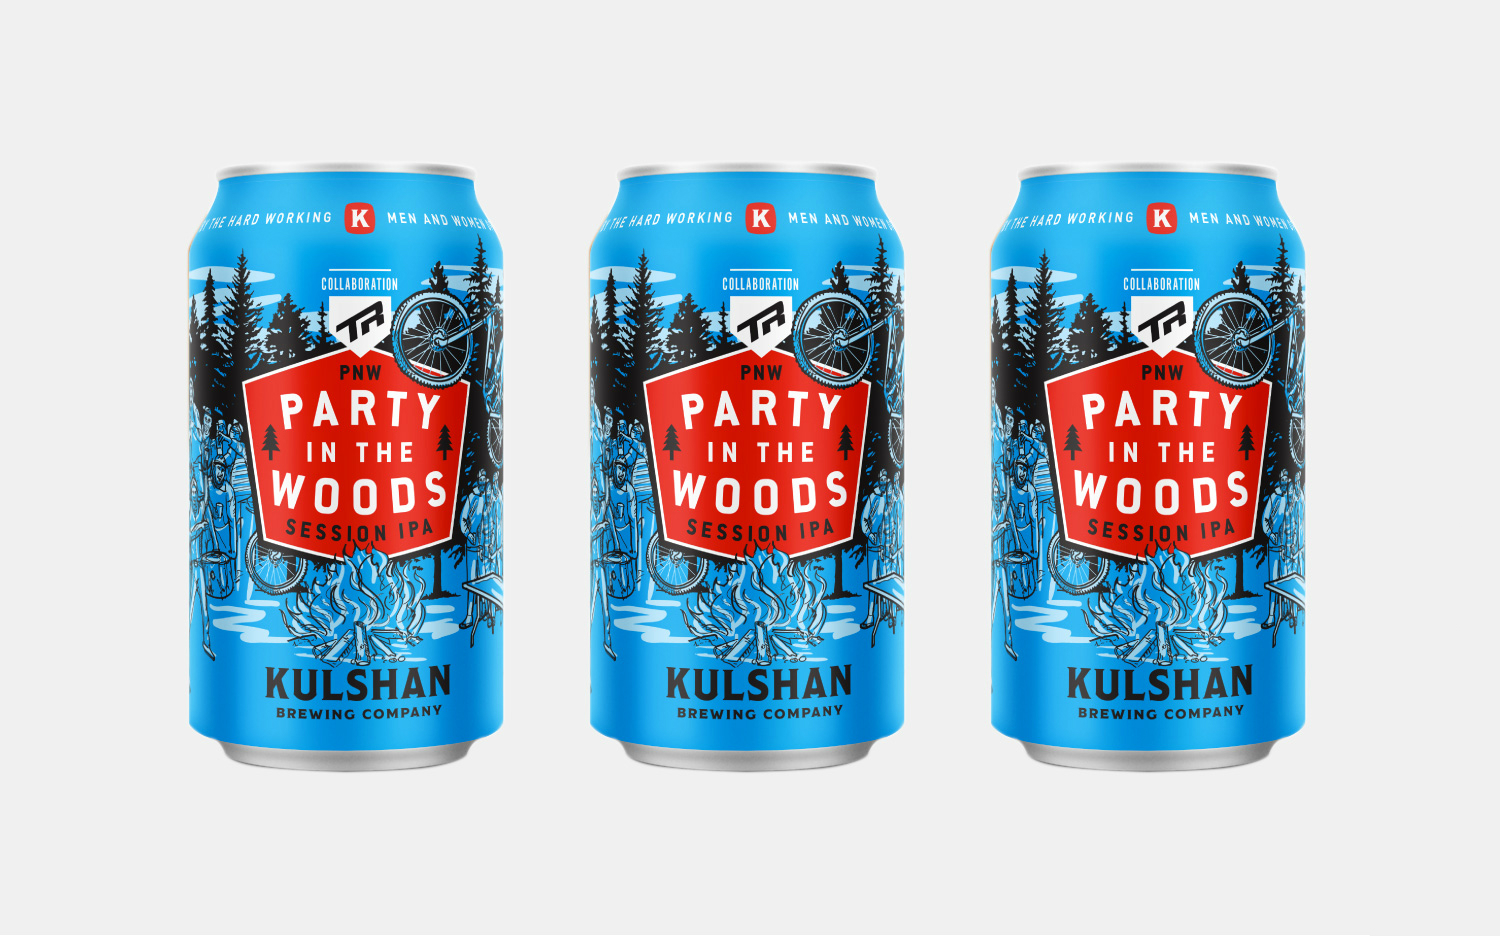 Party In The Woods Session IPA